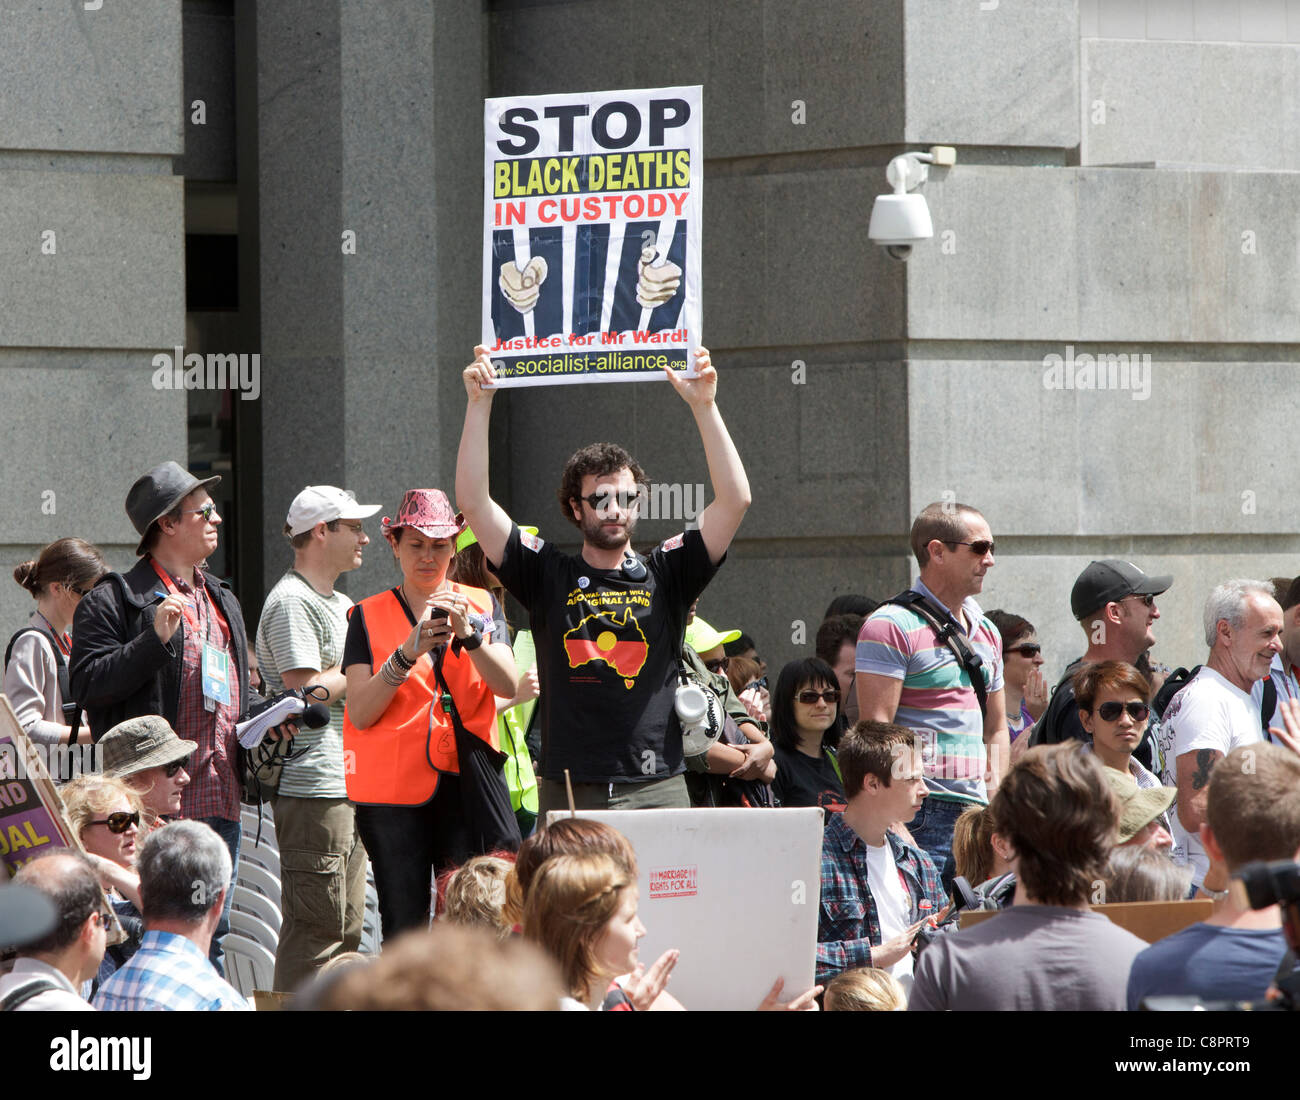 Protester holding a 'Stop Black Deaths in Custody' placard protesting about Aboriginal deaths in custody. - Stock Image